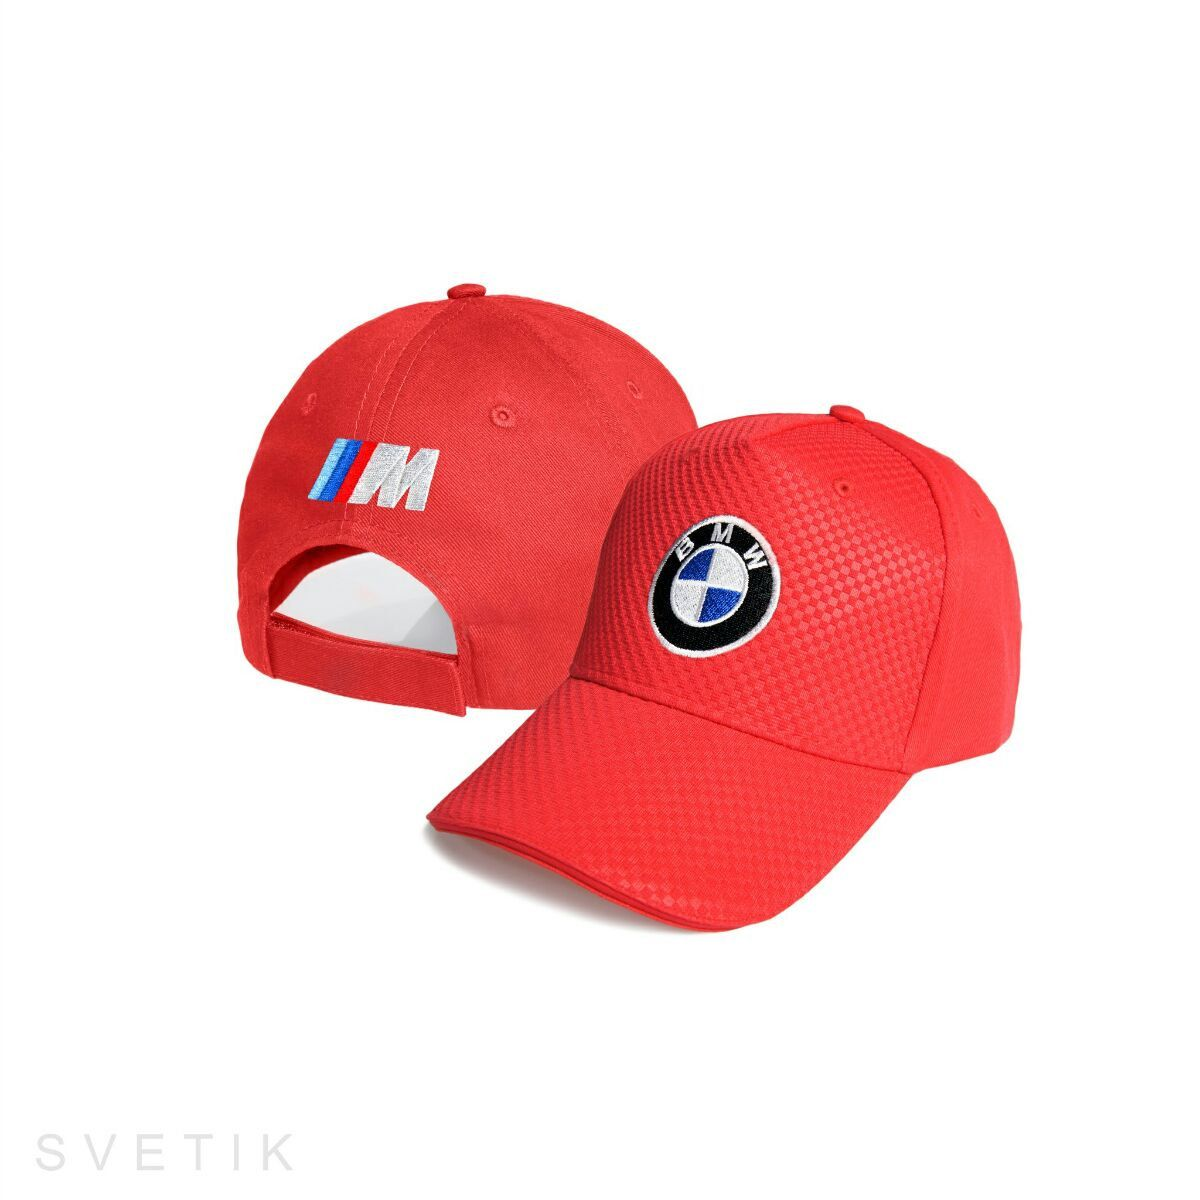 7dbe829c3cc0f CARBON BMW M POWER Red Baseball Cap Embroidered Auto Car Logo ...